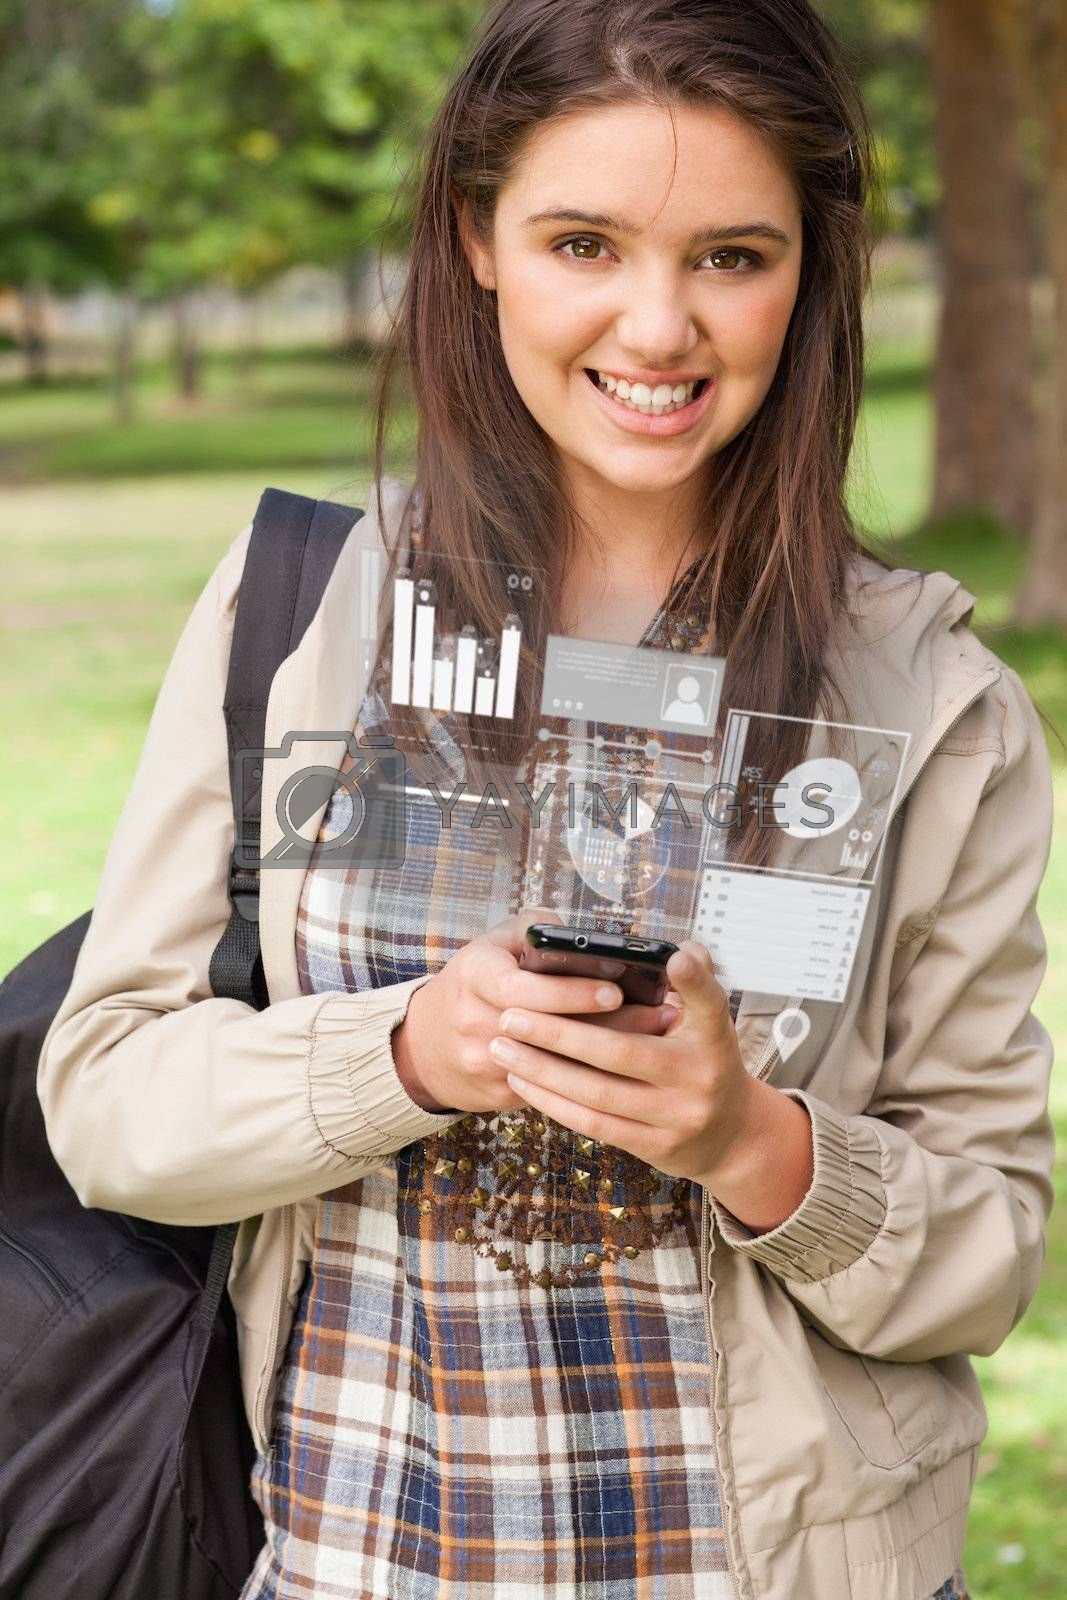 Happy young woman working on her futuristic smartphone by Wavebreakmedia